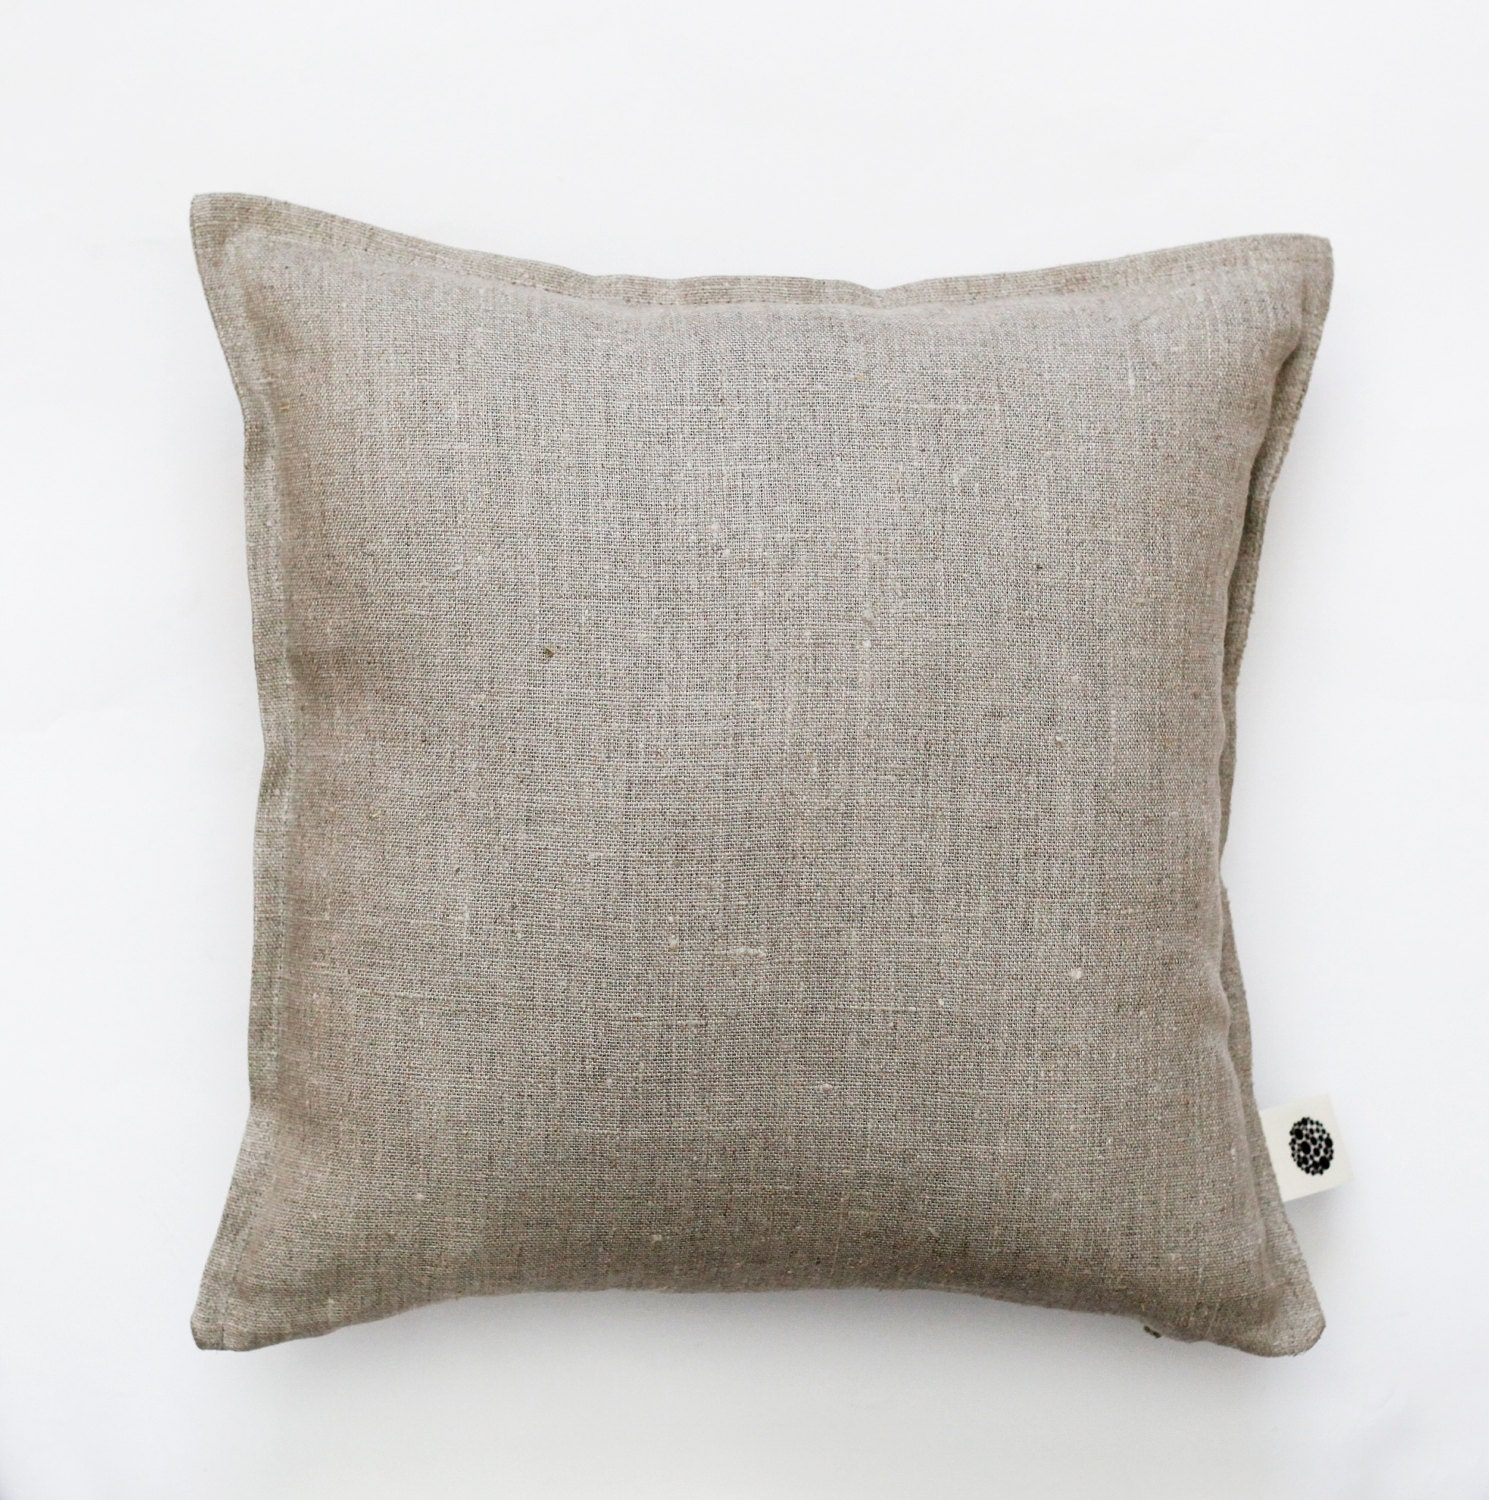 Decorative Linen Pillows : Linen pillow cover decorative pillows covers linen by pillowlink